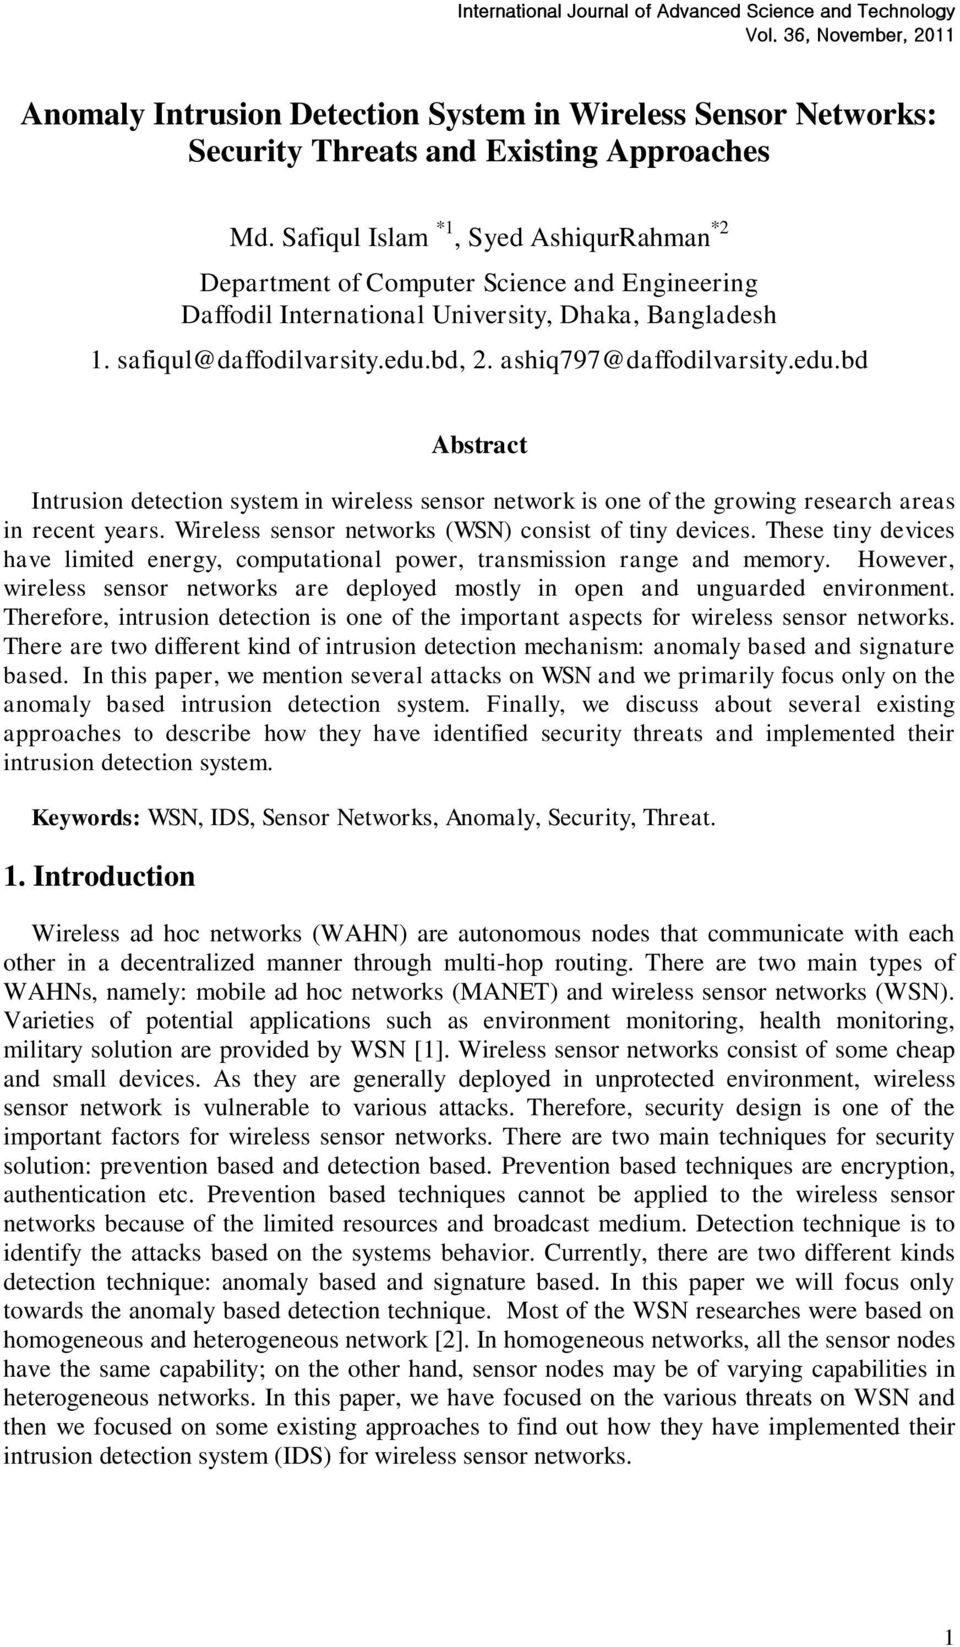 ashiq797@daffodilvarsity.edu.bd Abstract Intrusion detection system in wireless sensor network is one of the growing research areas in recent years.